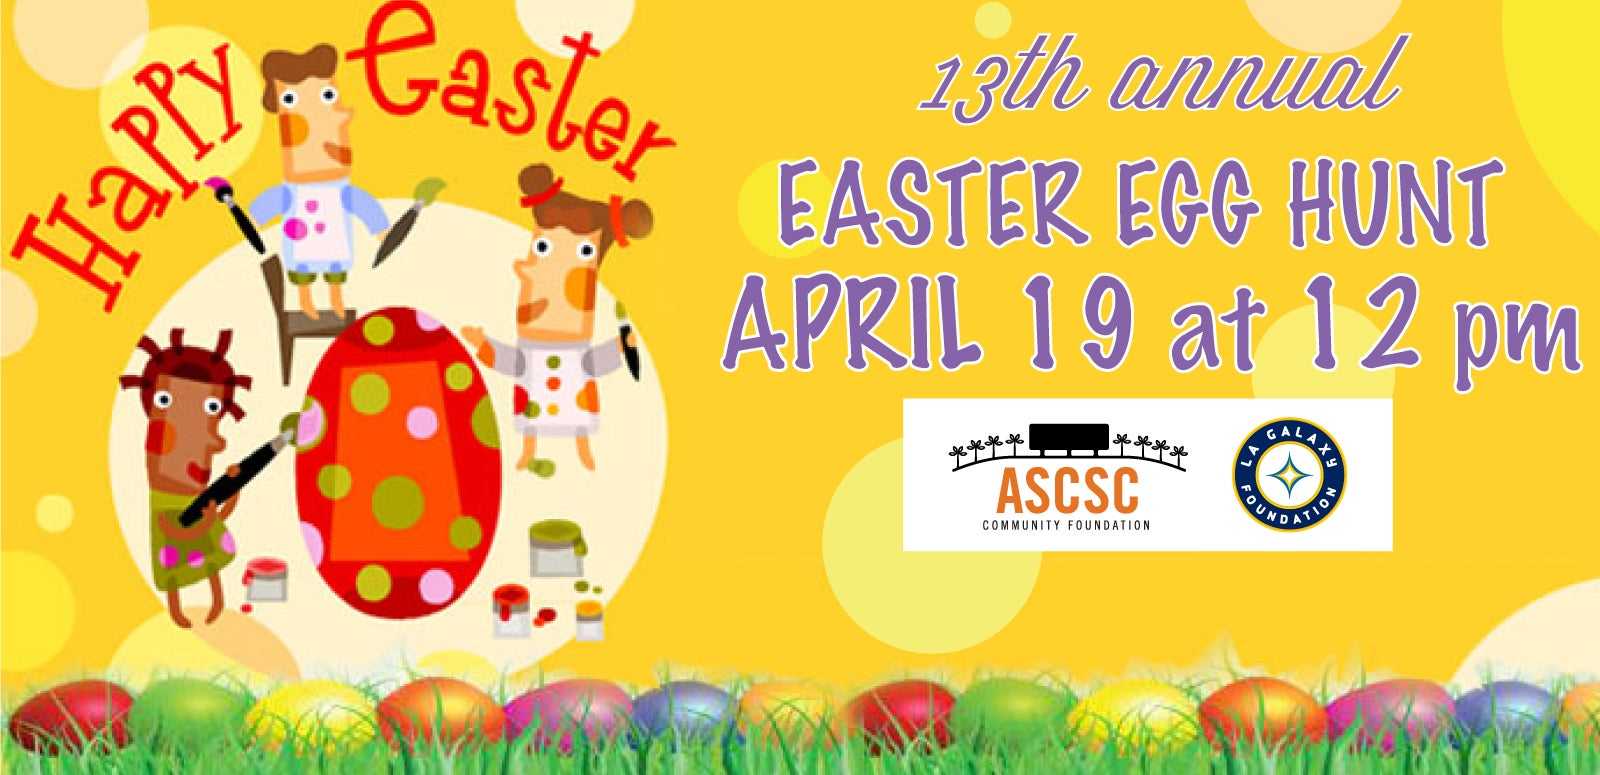 The ASCSC Community Foundation and LA Galaxy Foundation 13th Annual Easter Egg Hunt